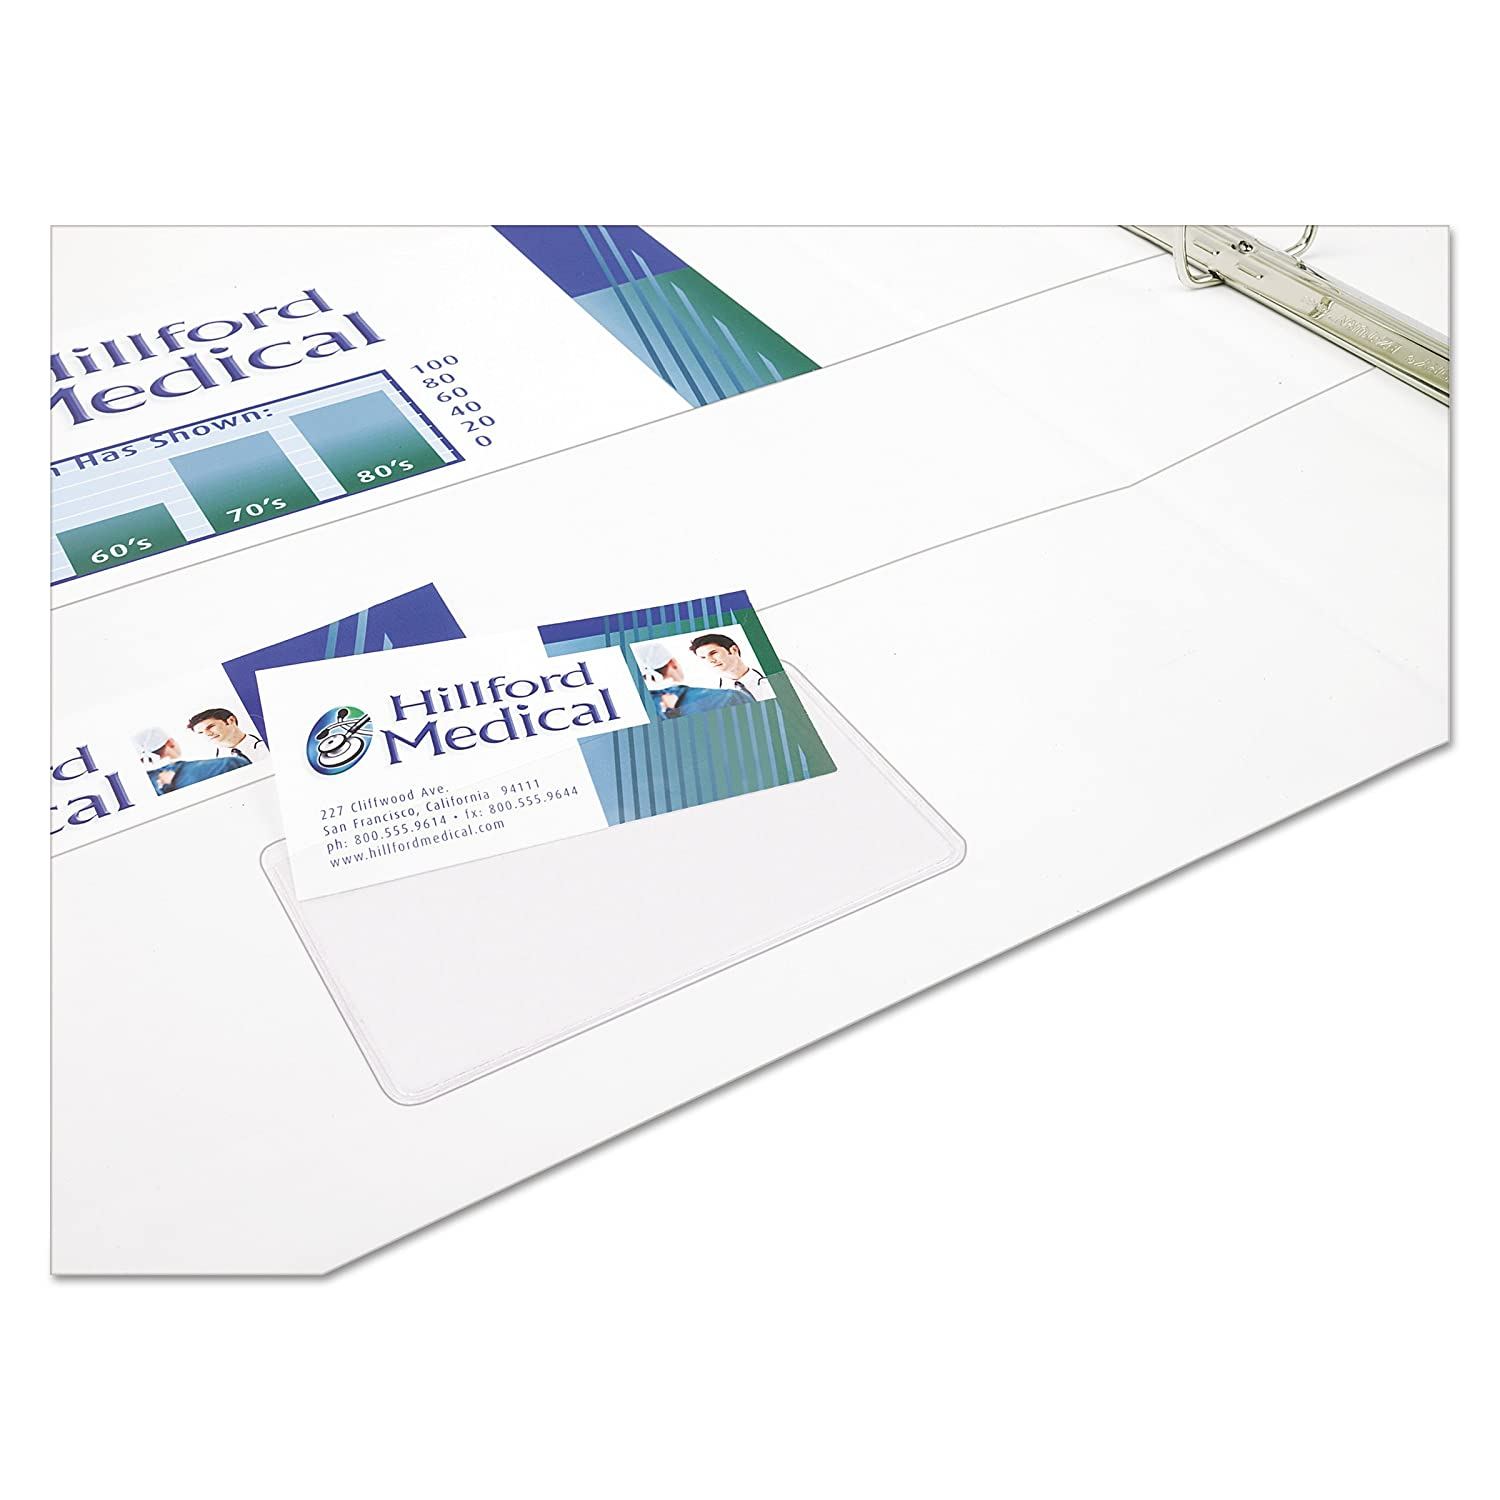 postcard paper weight Postcards quantity: 28# paper is our standard copy paper 50# and 80# are mid-range papers 110#, 120# and 130# are heavy cardstock weights if you still have a question please fill out the form and we'll be happy to help.